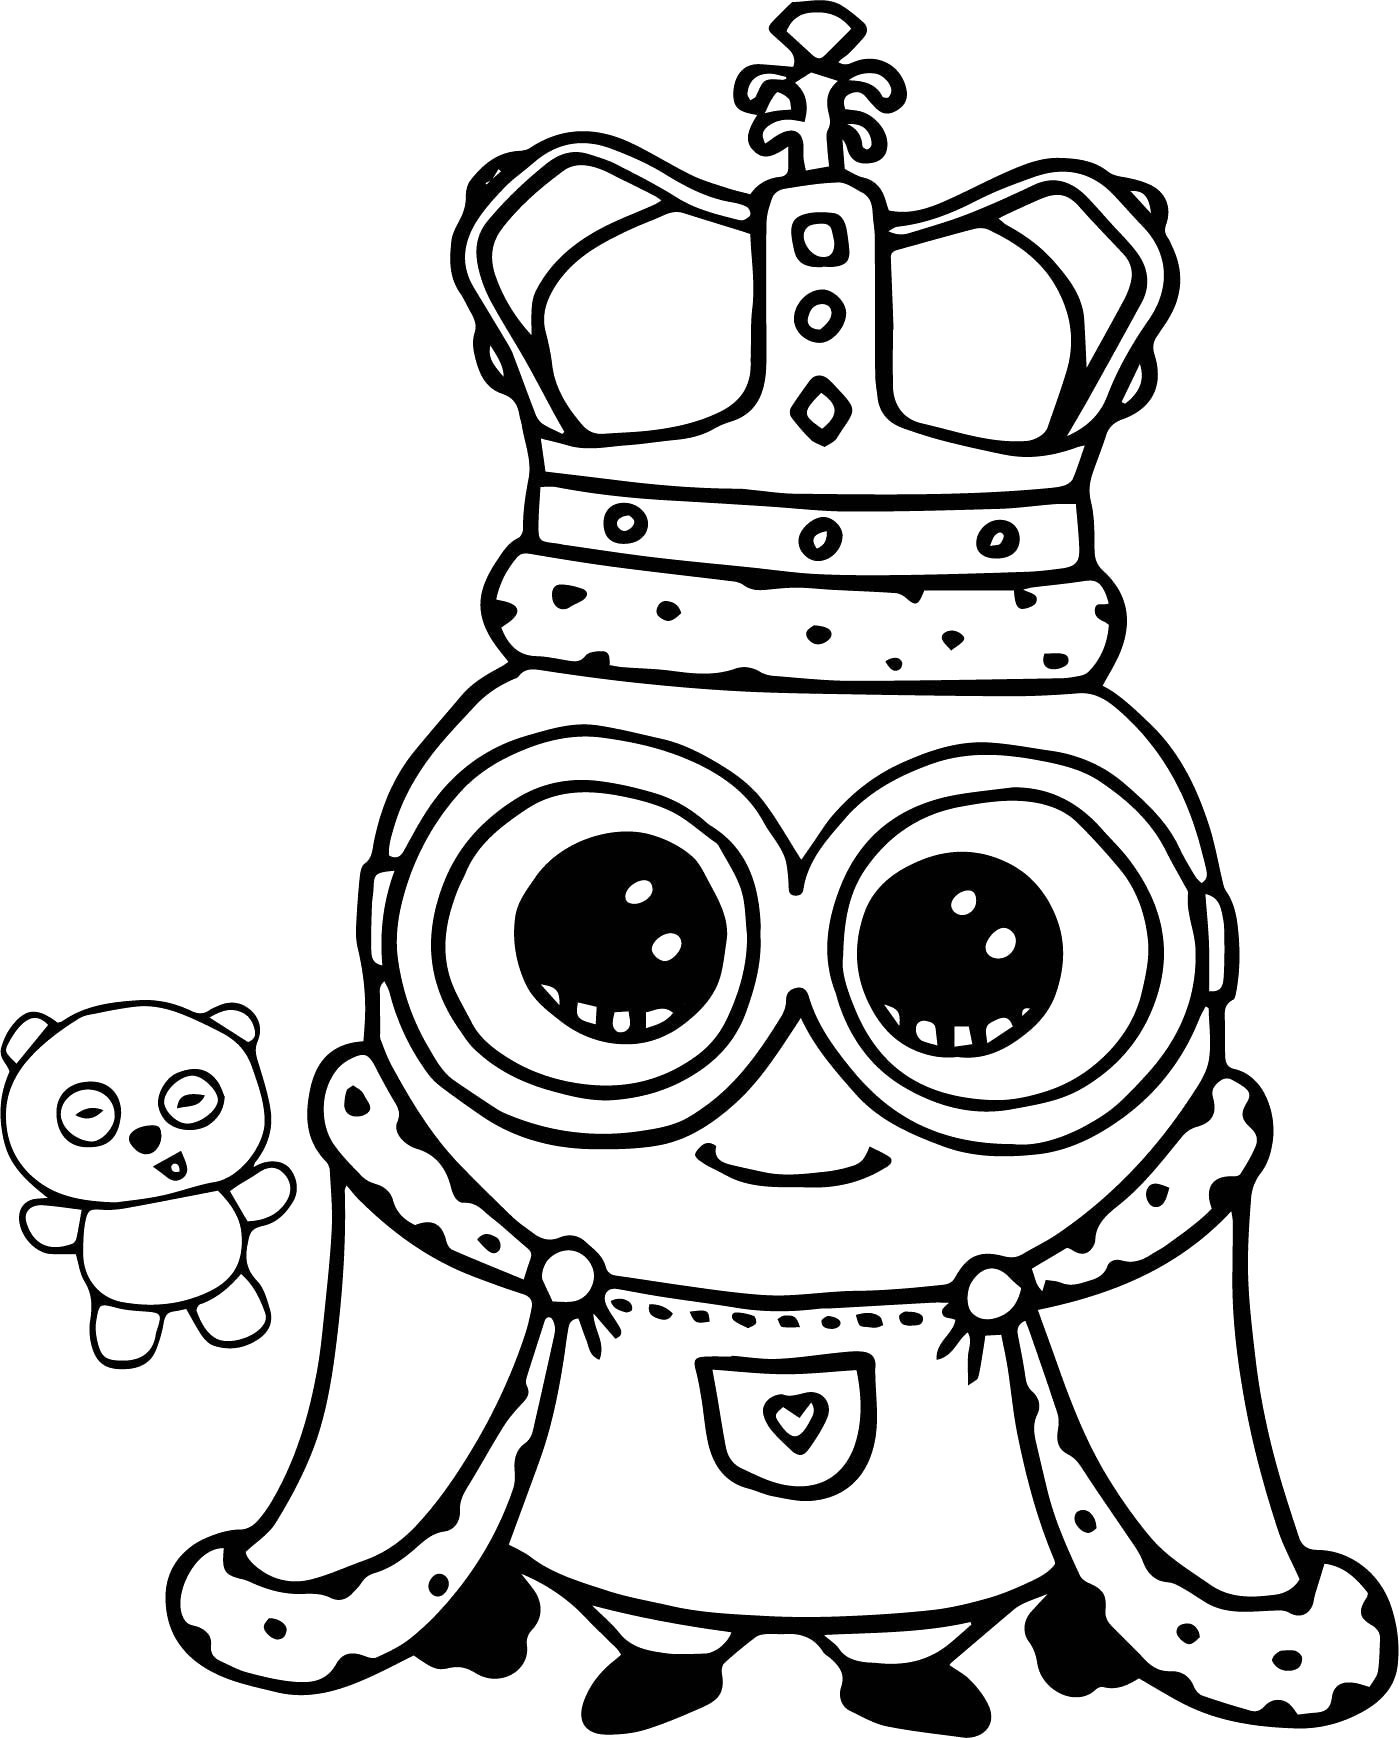 Despicable Coloring Pages Coloring Pages Of Minions Bob New Kevin Despicable Me 2 Page Minion